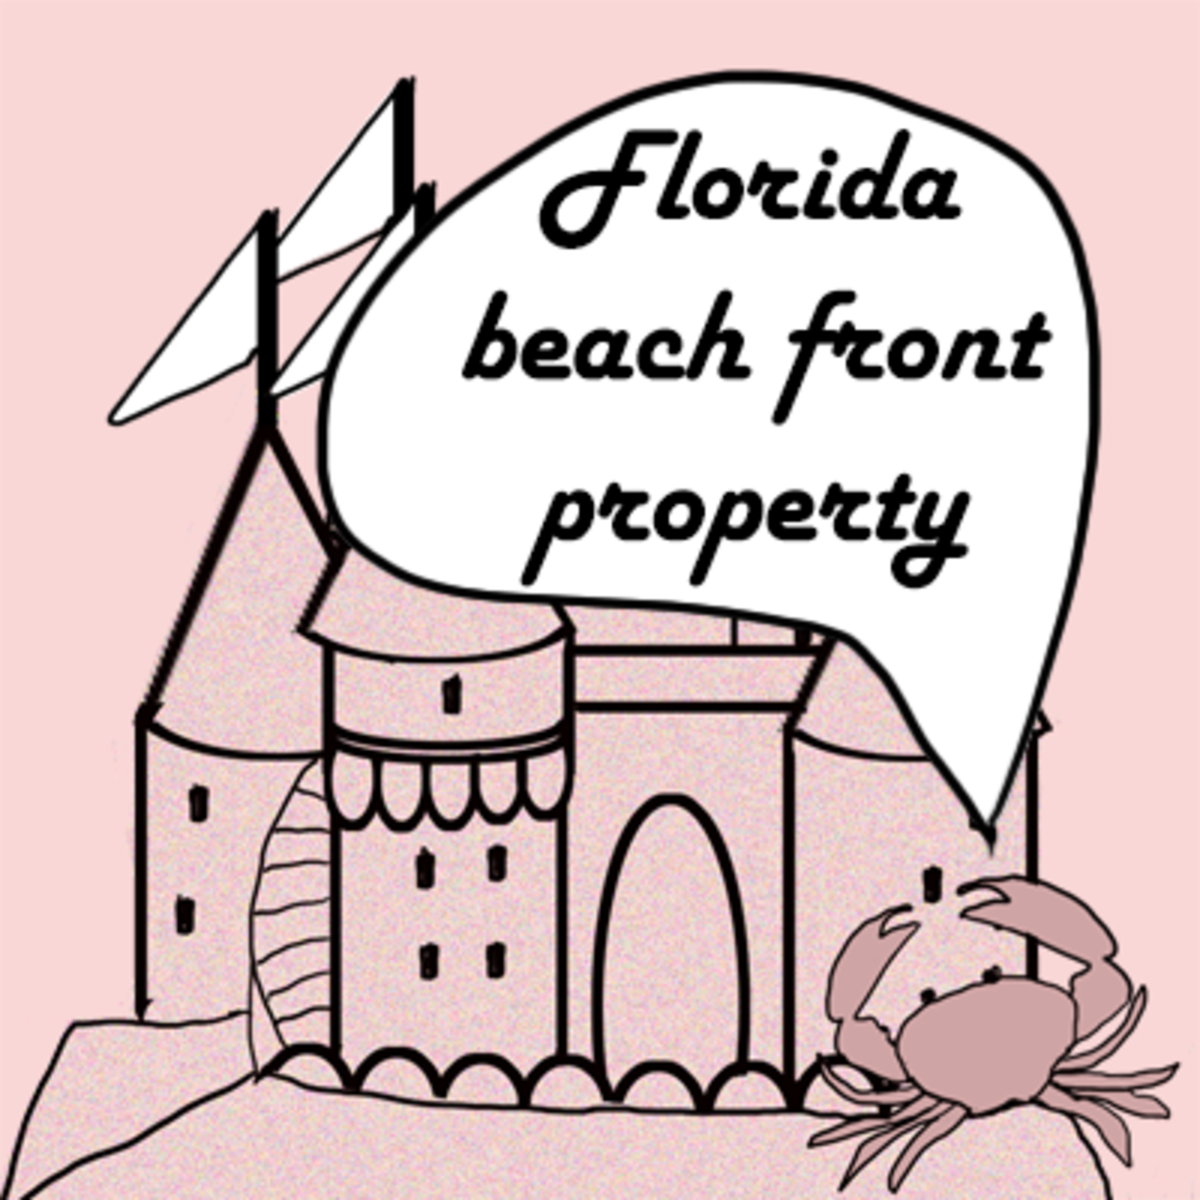 Collecting Sand: Owning a Beach Front Property in Florida